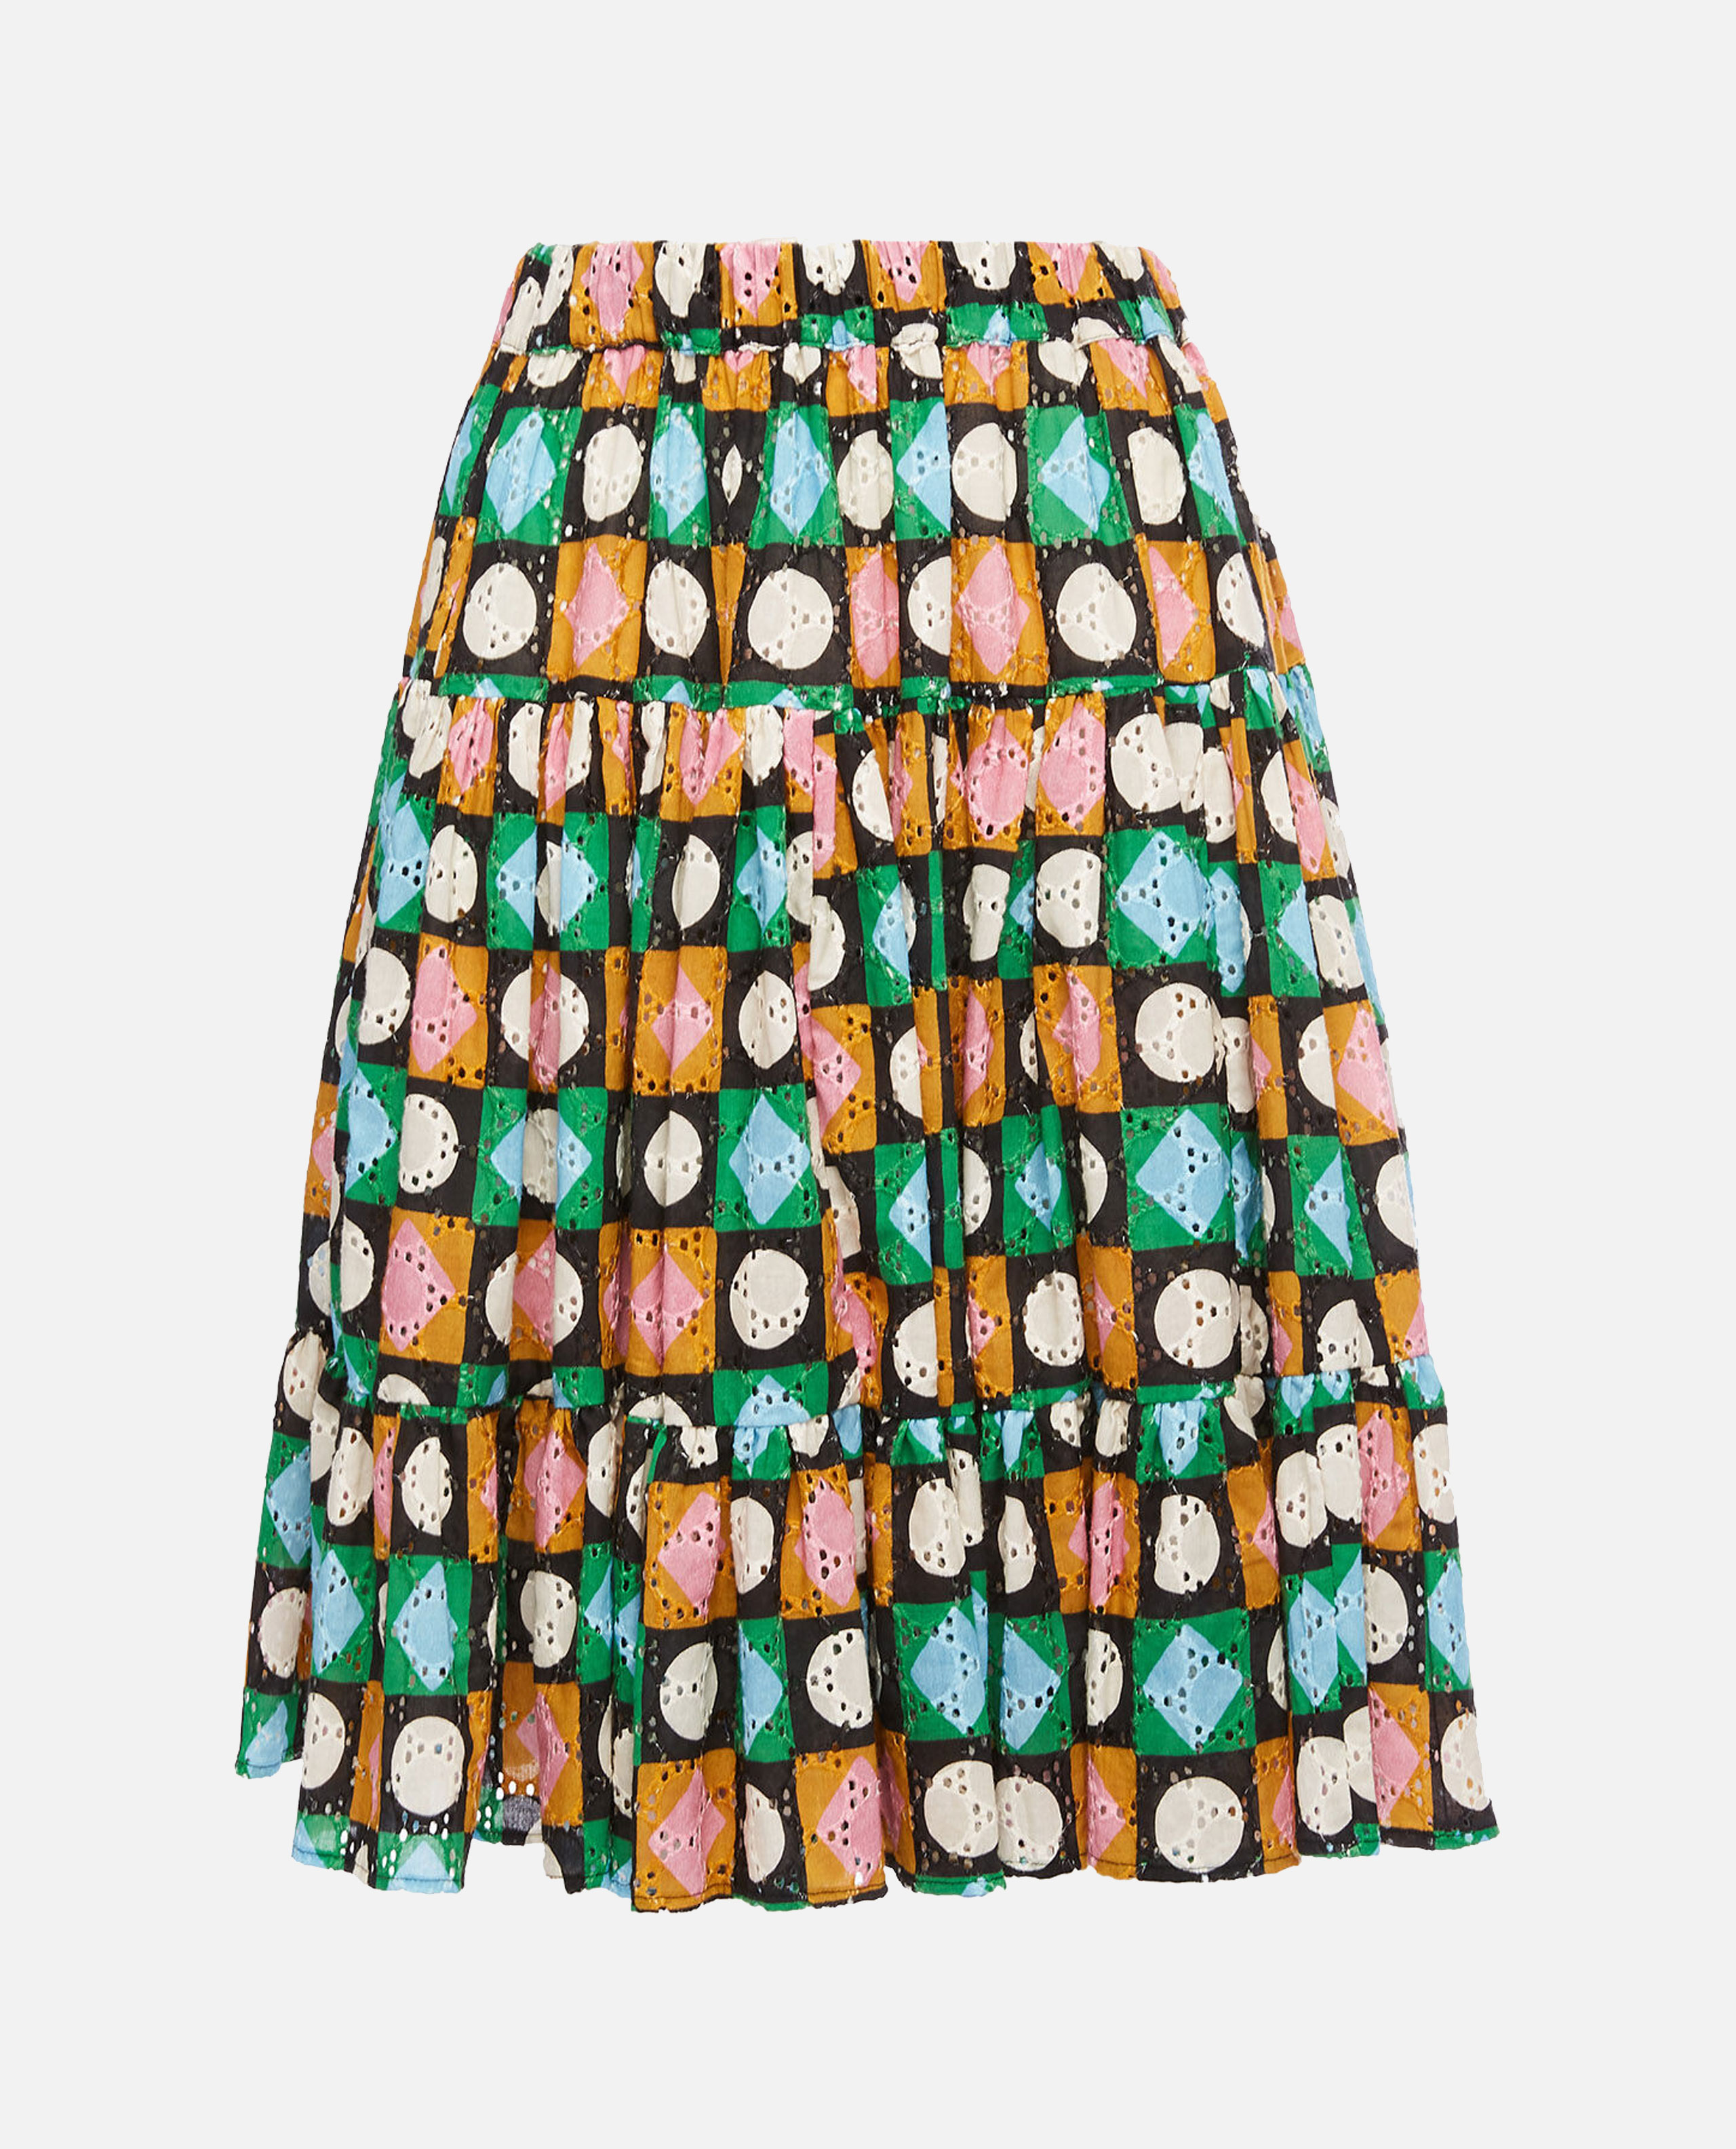 Lucky Charms  skirt